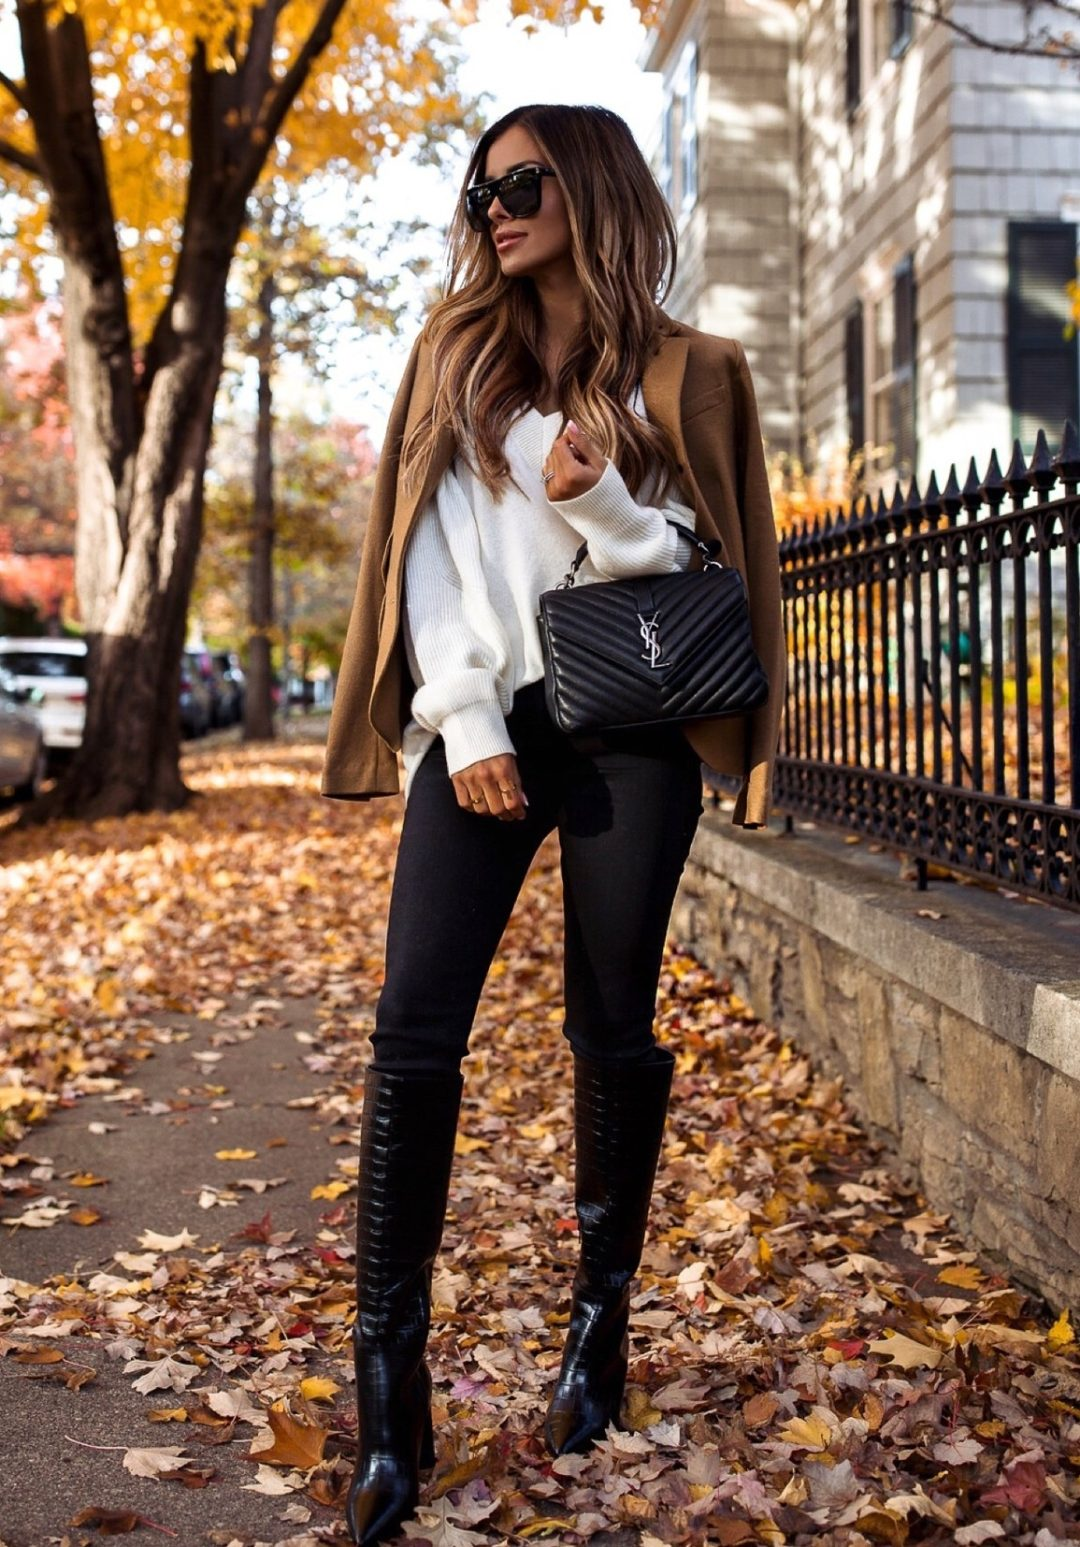 Chic black leggings outfit idea with YSL bag